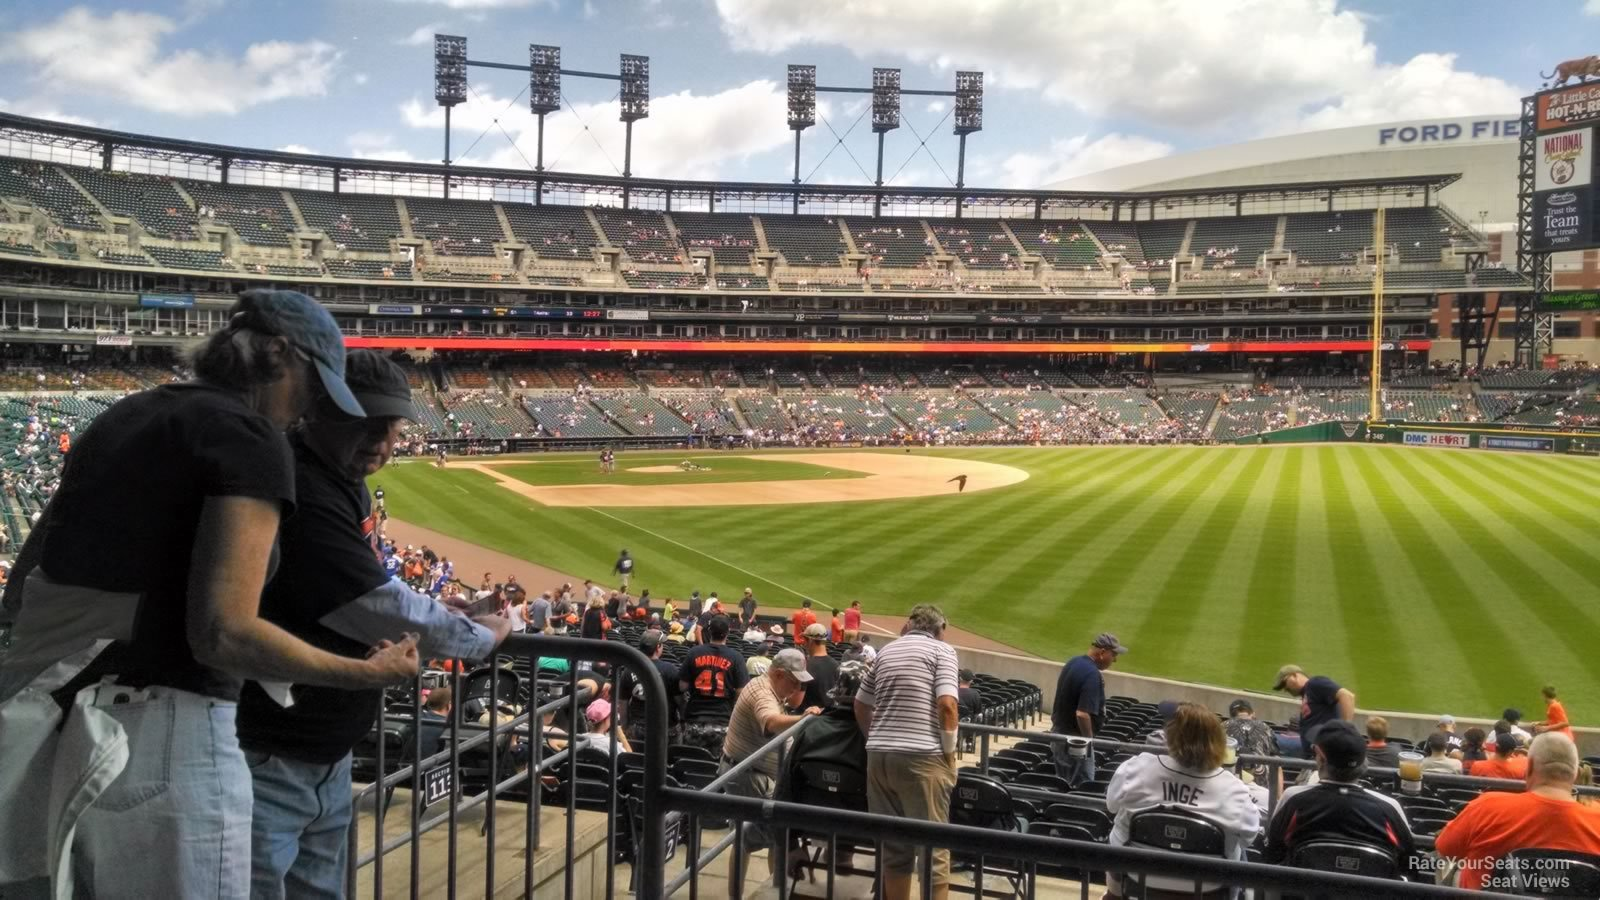 View from Section 112 Row 40 at Comerica Park